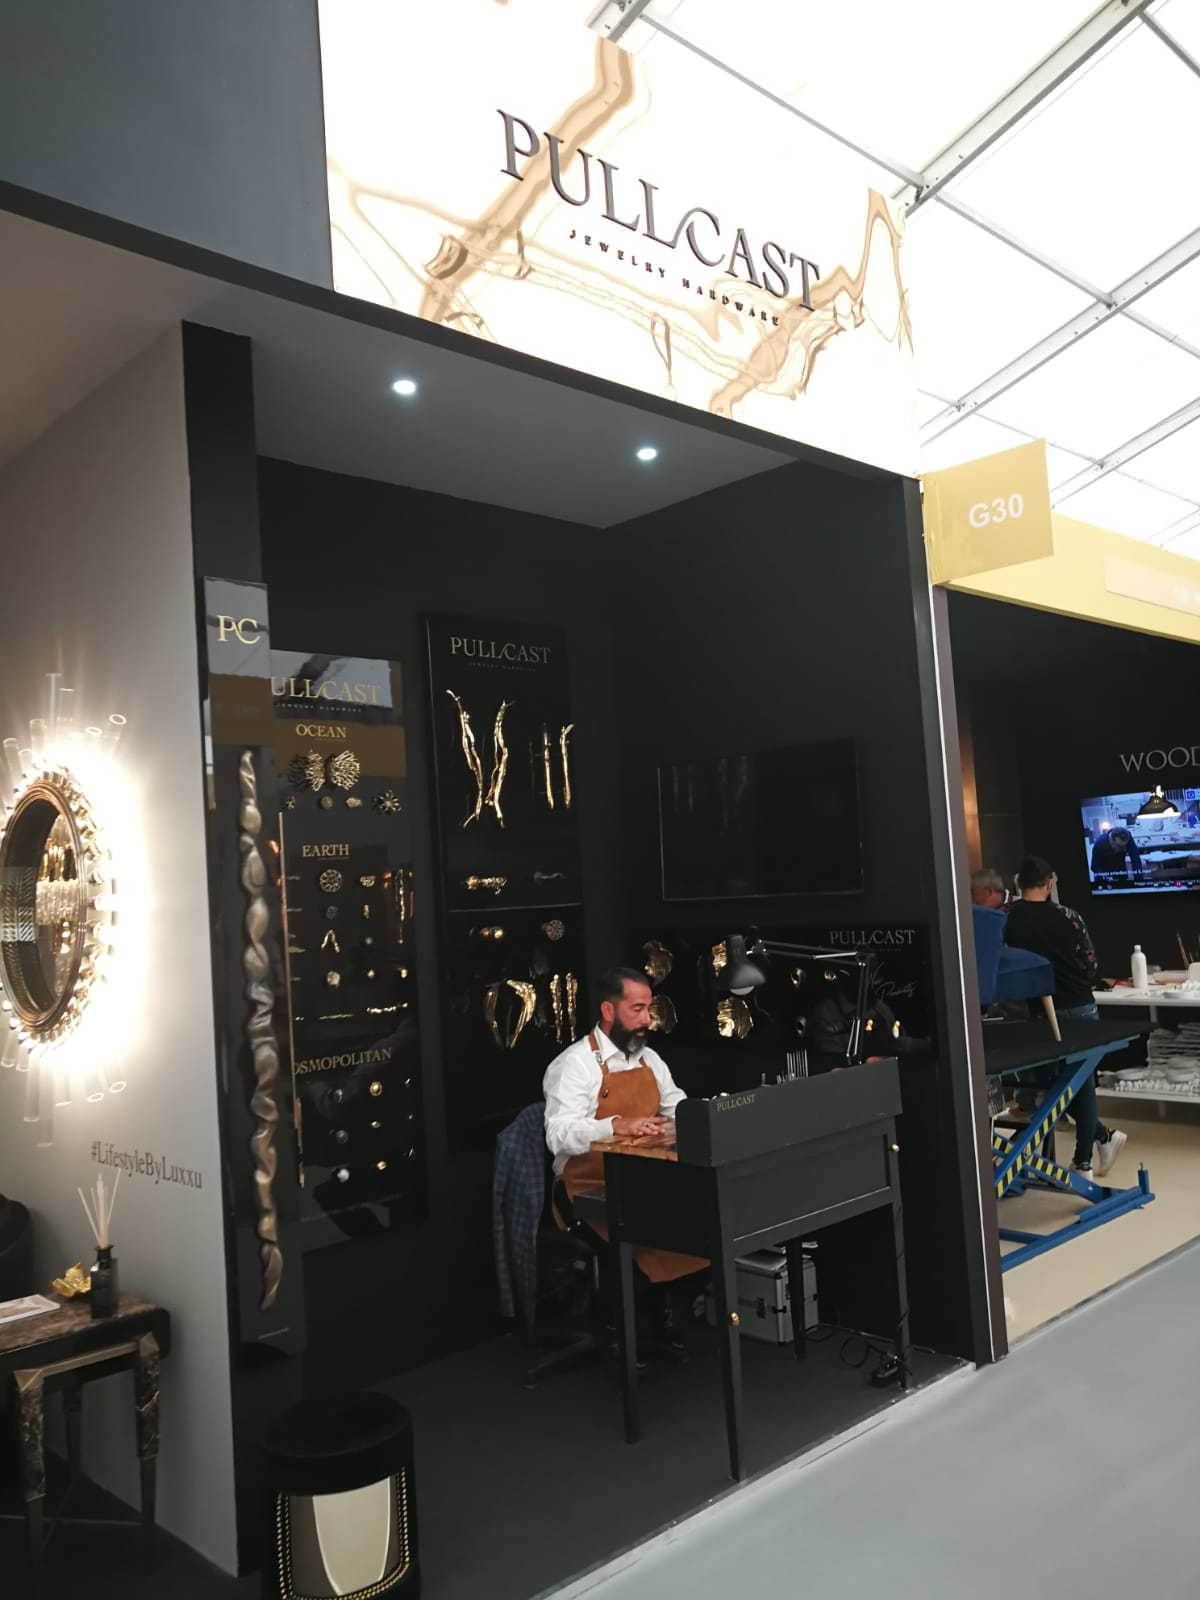 Decorex Ends Tomorrow! Have You Visited PulLCast? decorex Decorex Ends Tomorrow! Have You Visited PullCast? WhatsApp Image 2018 09 16 at 10